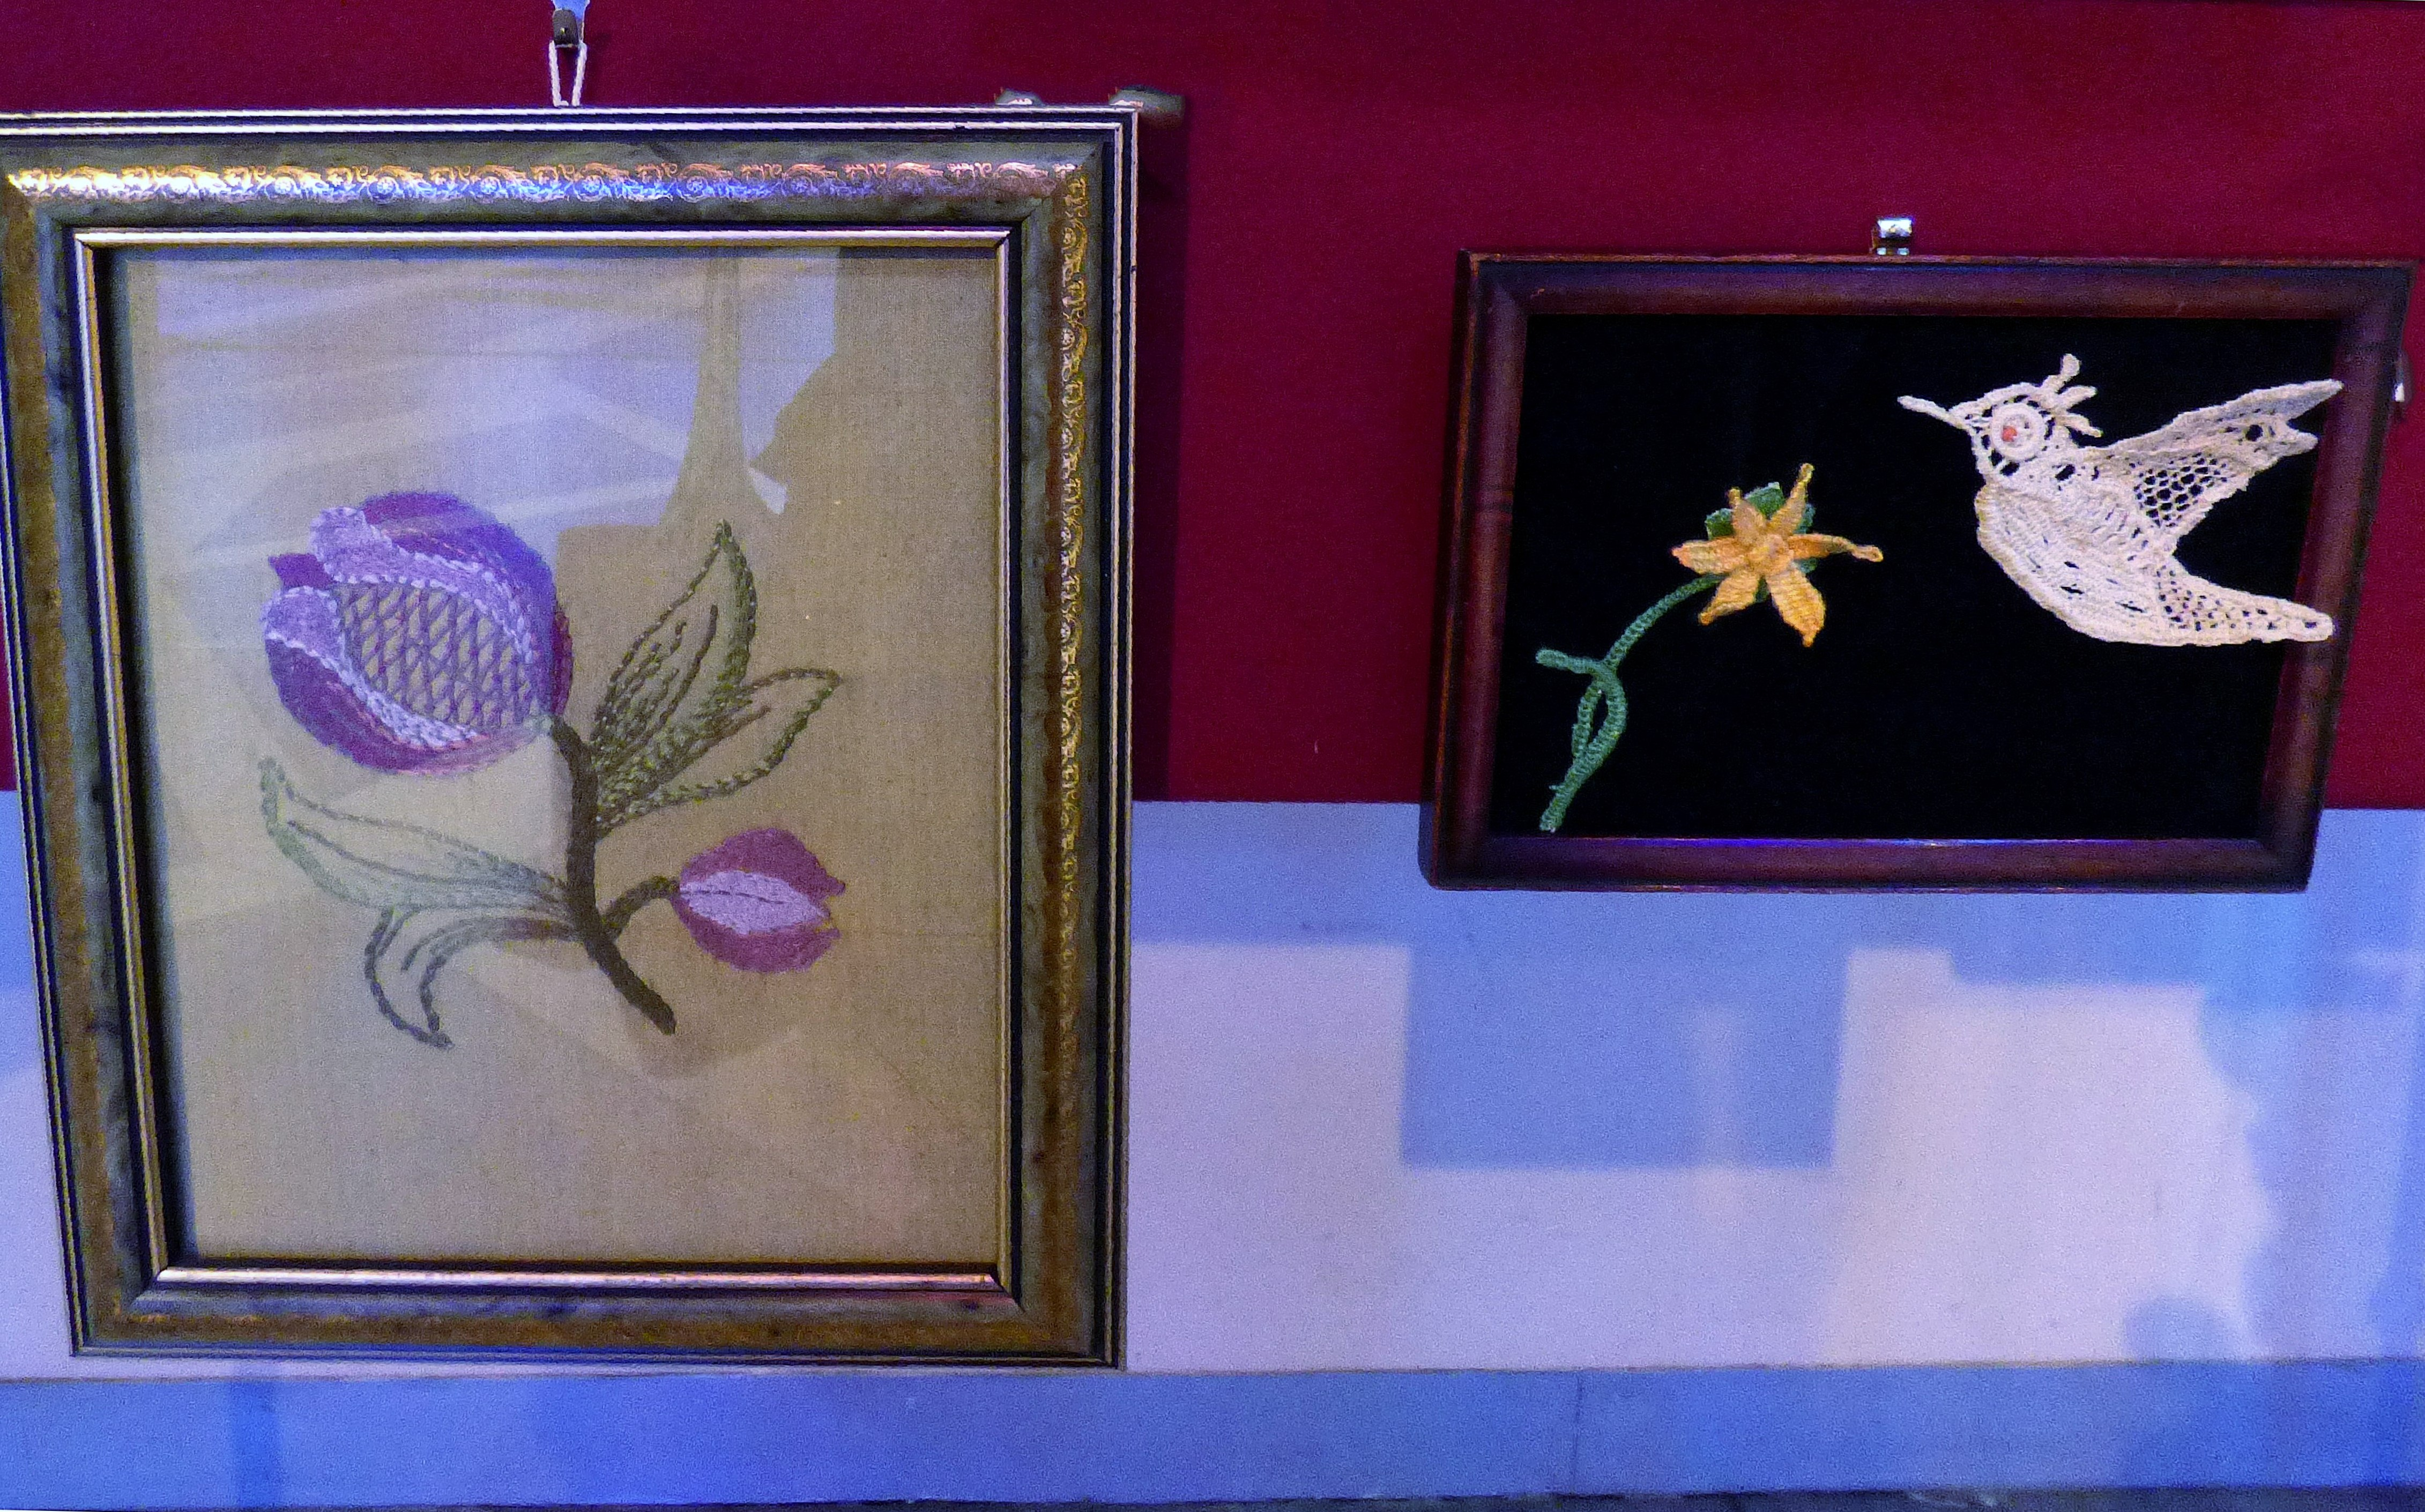 CREWELWORK by J.McParland and NEEDLE LACE by J.McParland , at Embroidery for Pleasure exhibition, Liverpool Metropolitan Cathedral 2016